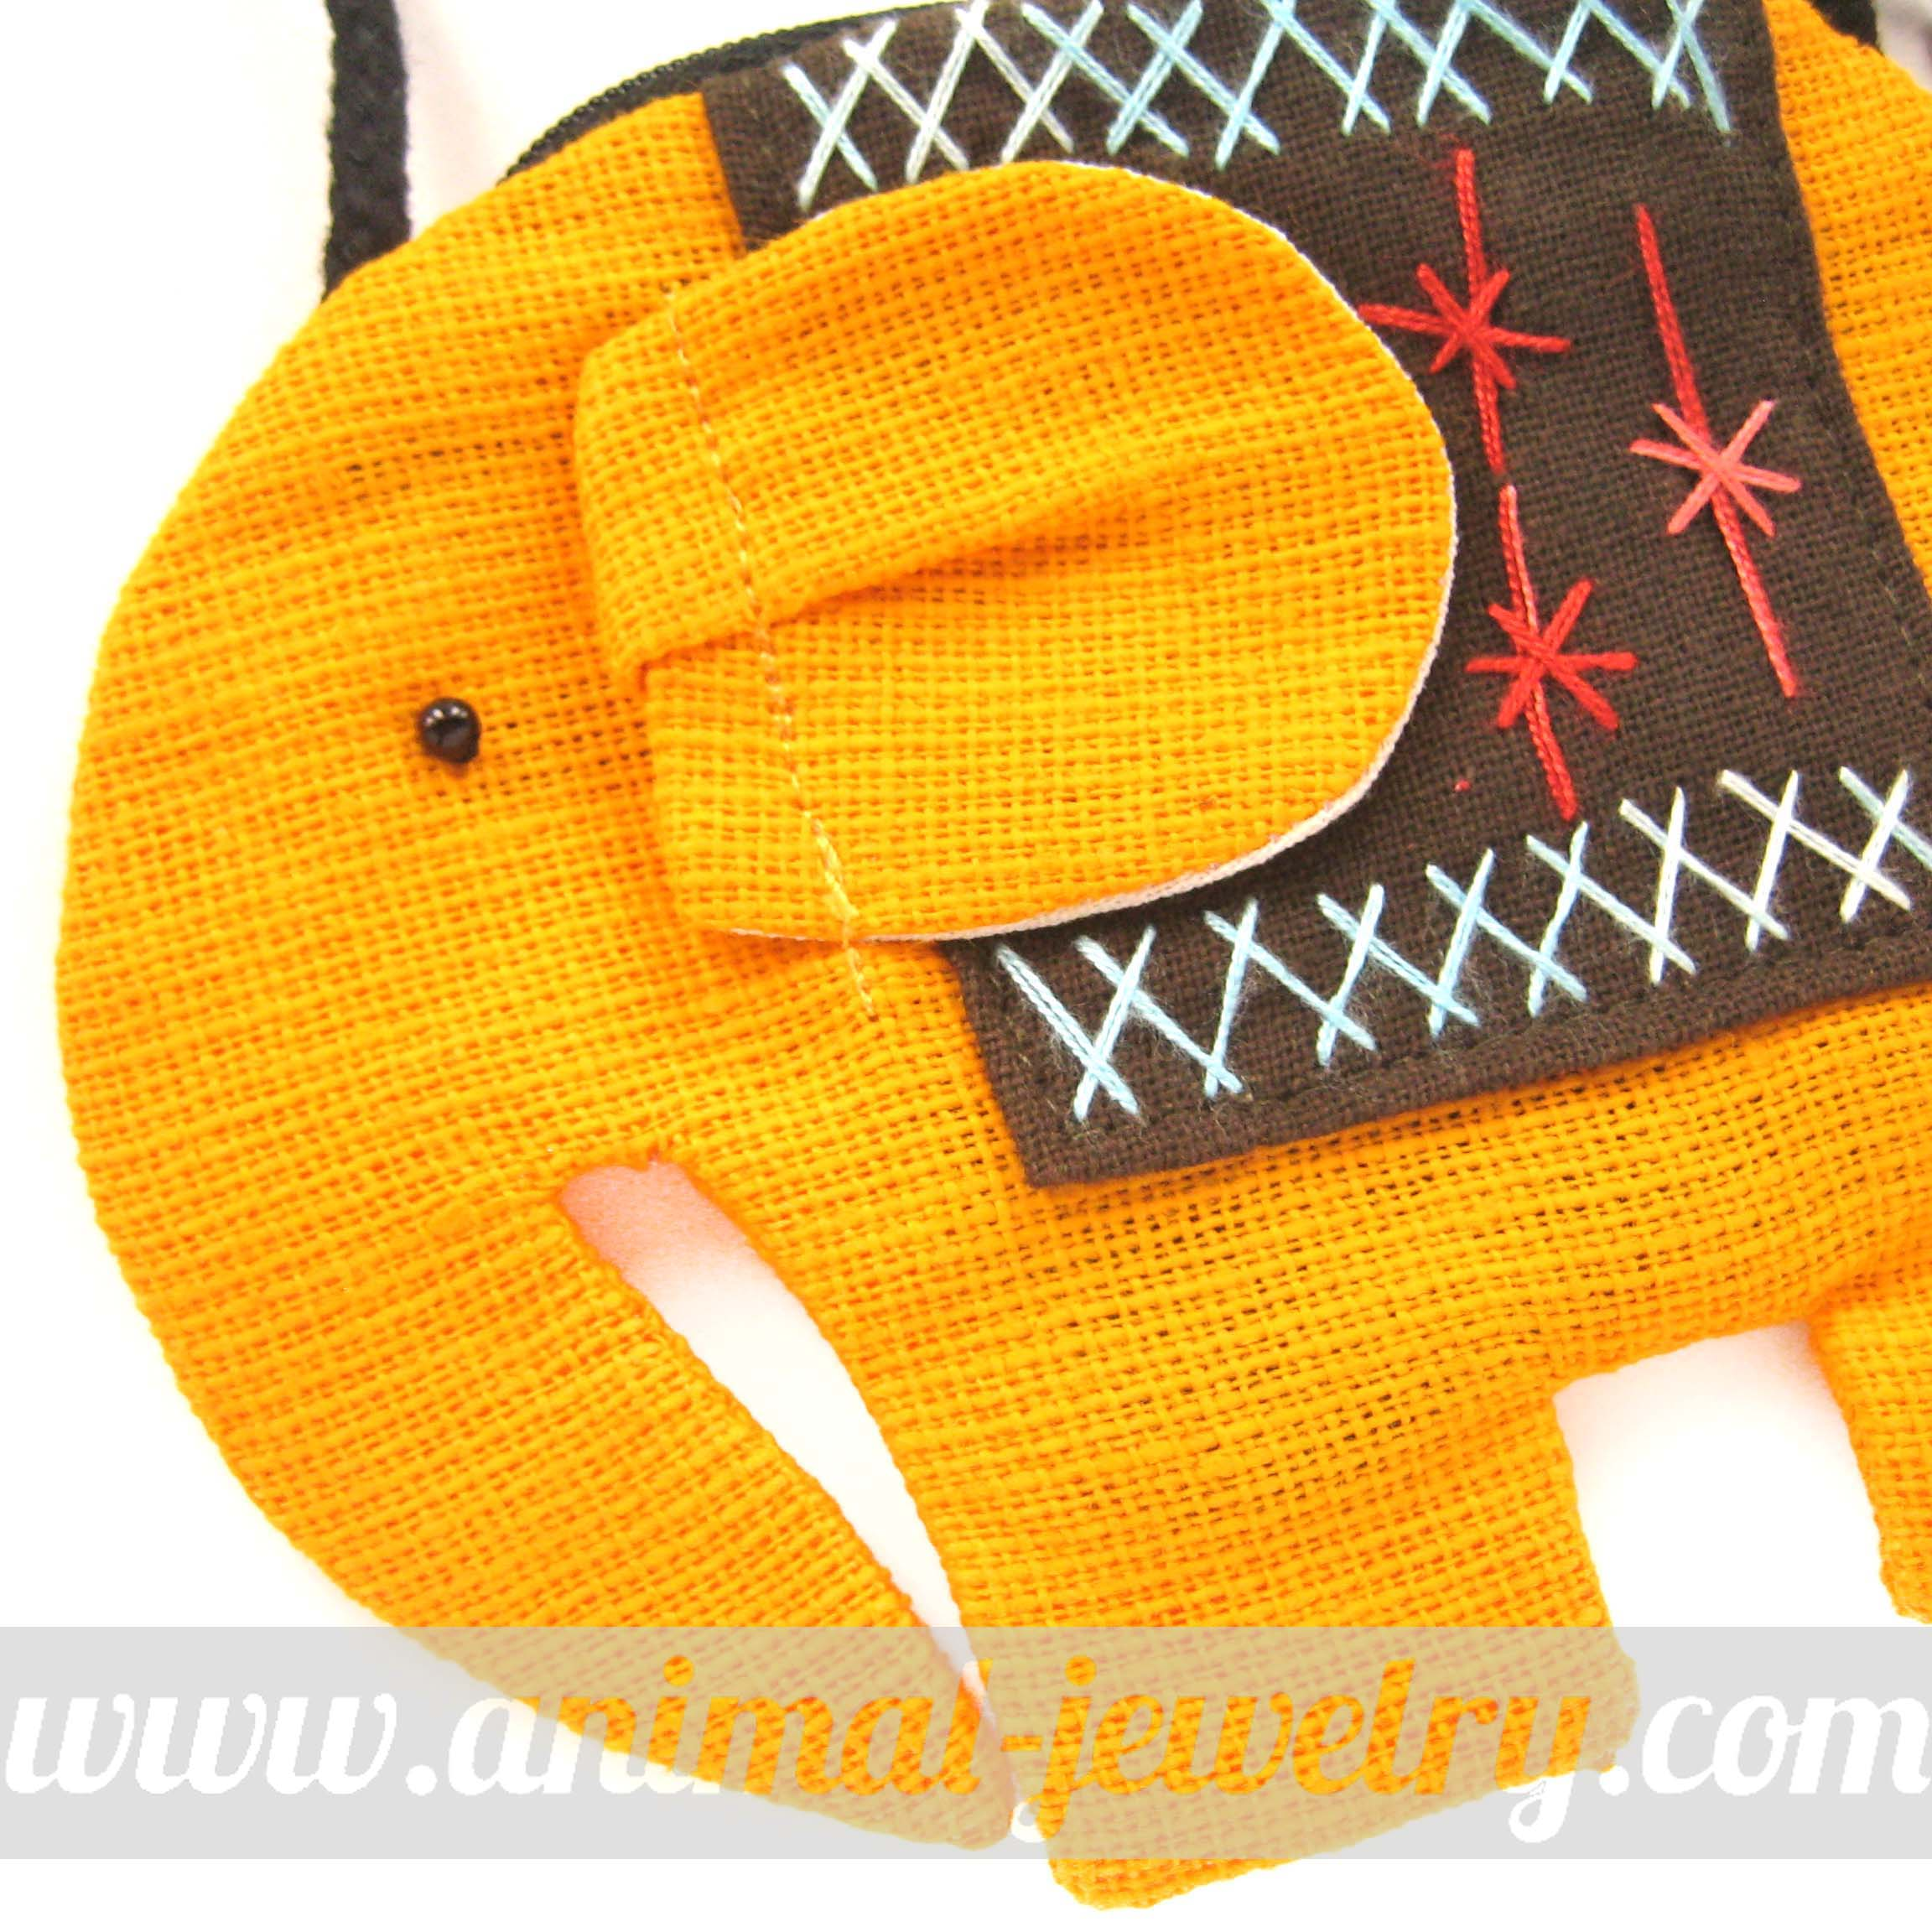 small-elephant-shaped-animal-cross-body-bag-in-mustard-yellow